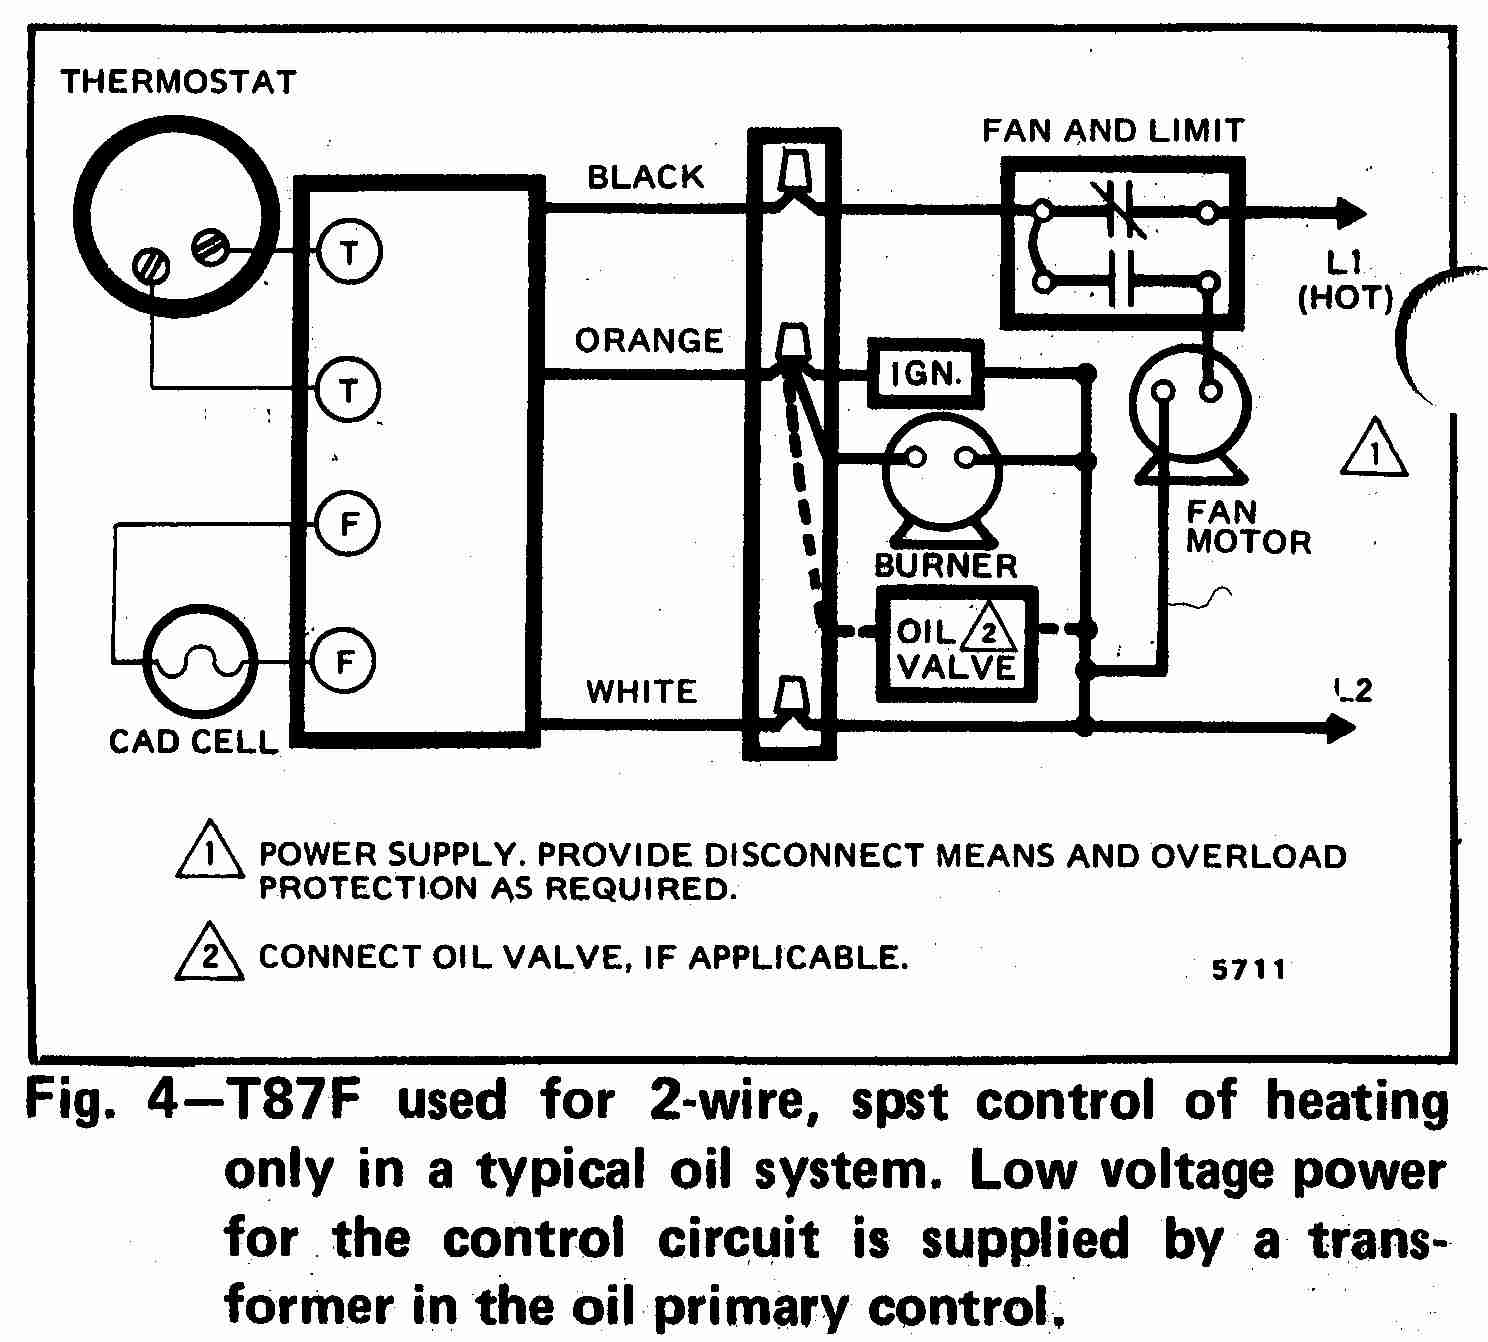 Honeywell T87n1000 Wiring Diagram Circuit Schematic For Water Heater Control Opinions About U2022 L8148e